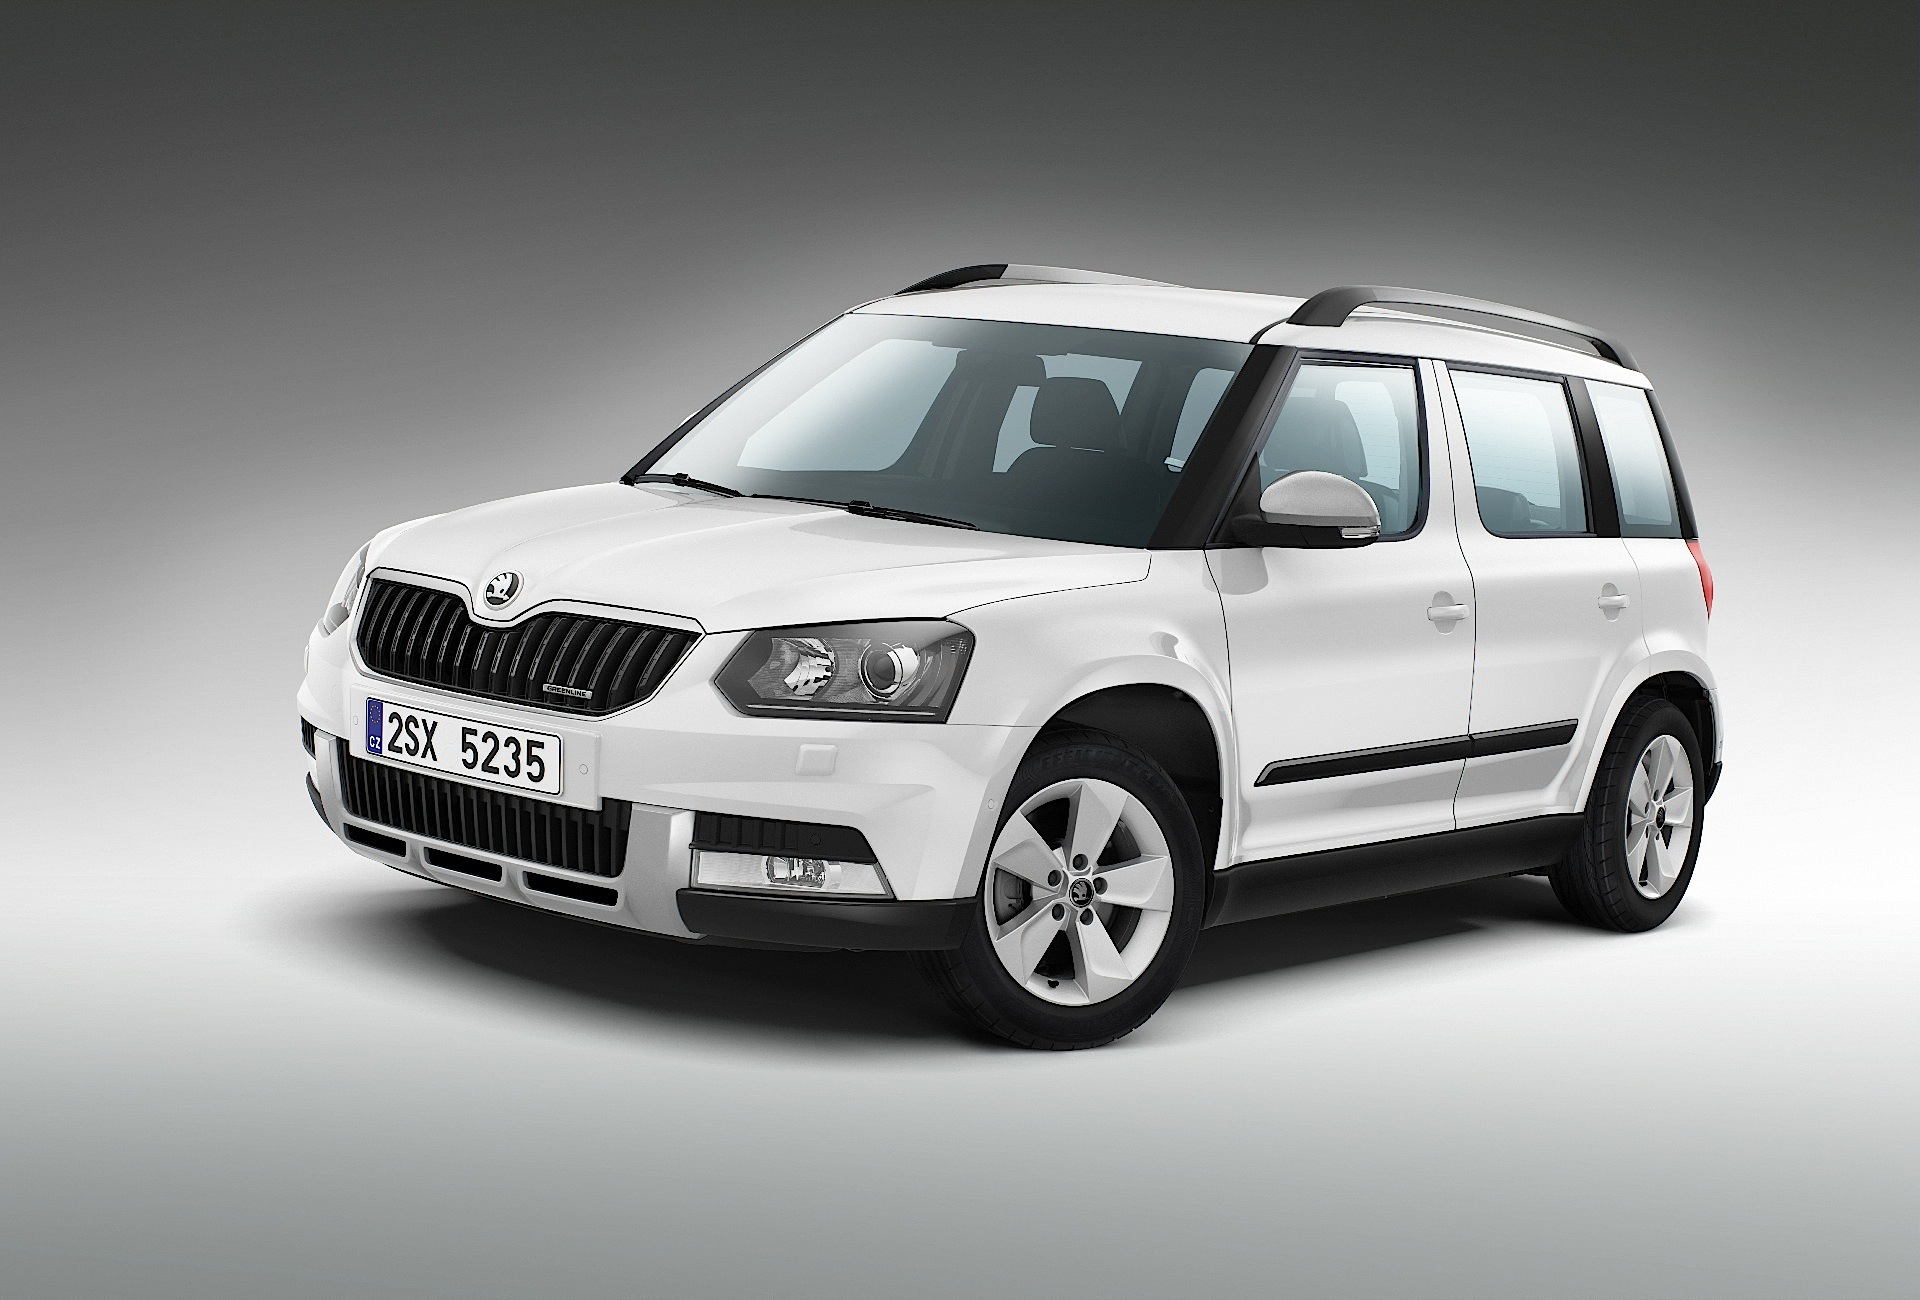 skoda yeti specs 2013 2014 2015 2016 2017 autoevolution. Black Bedroom Furniture Sets. Home Design Ideas